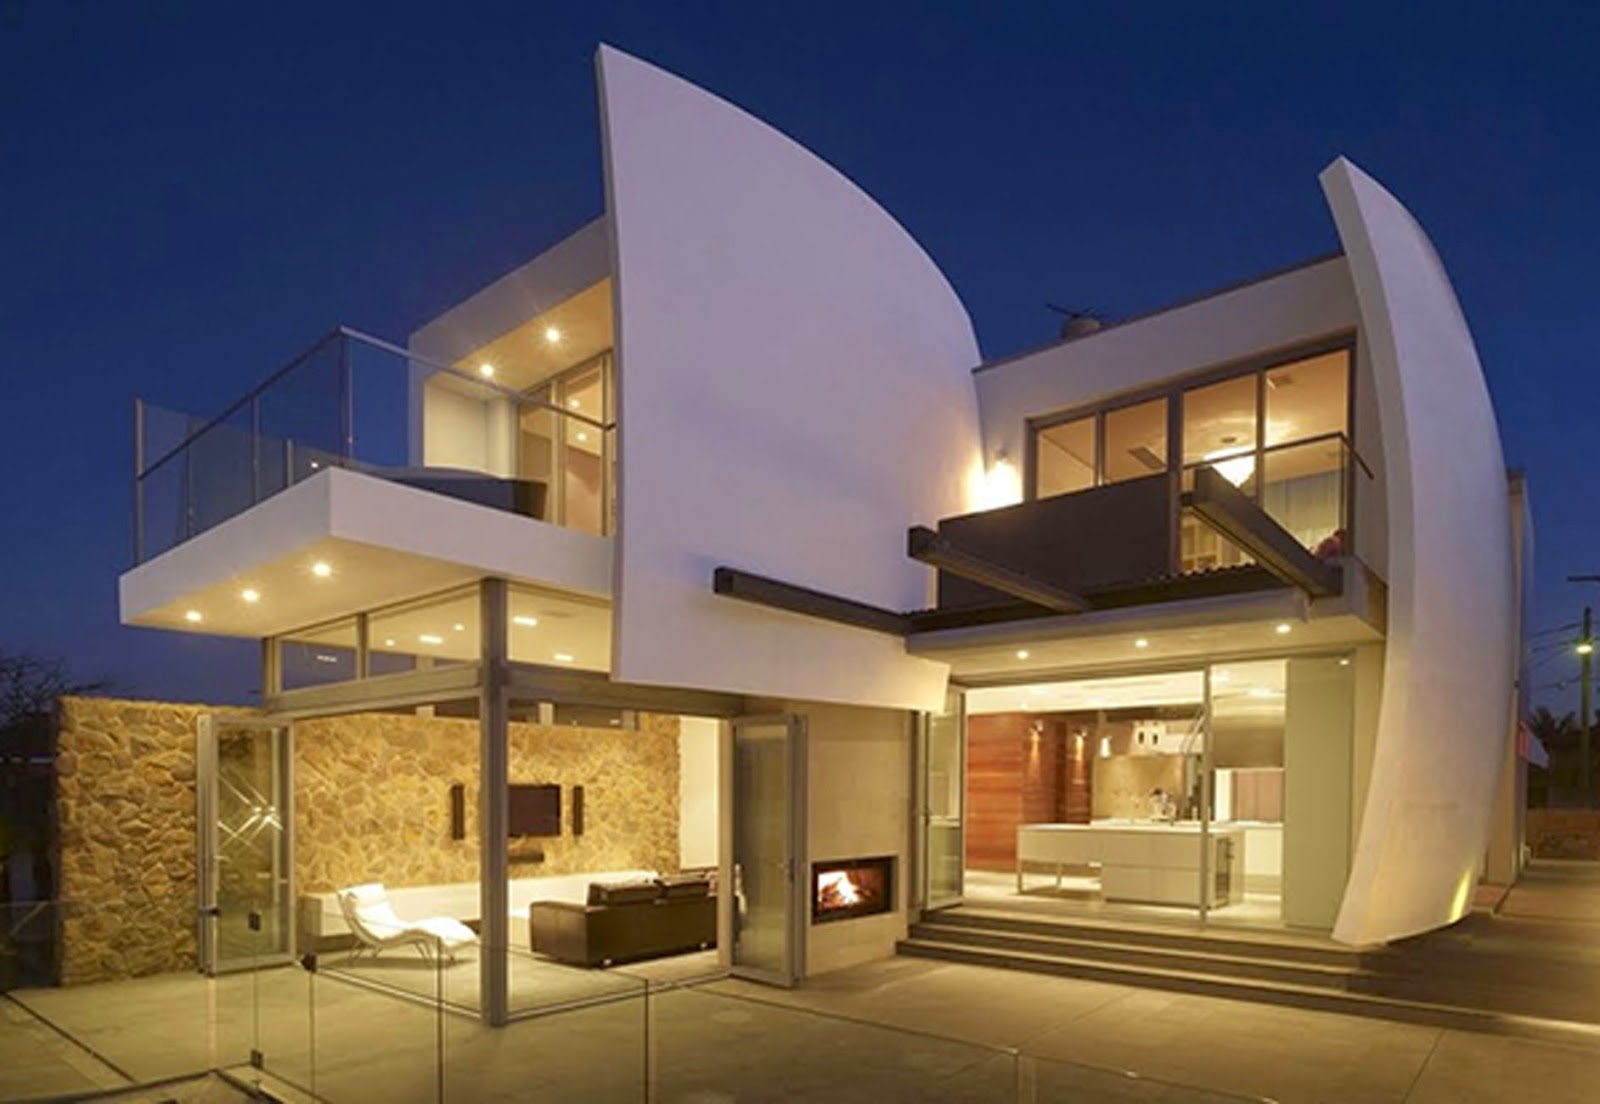 Design with Futuristic Architecture in Australia Luxurious Design